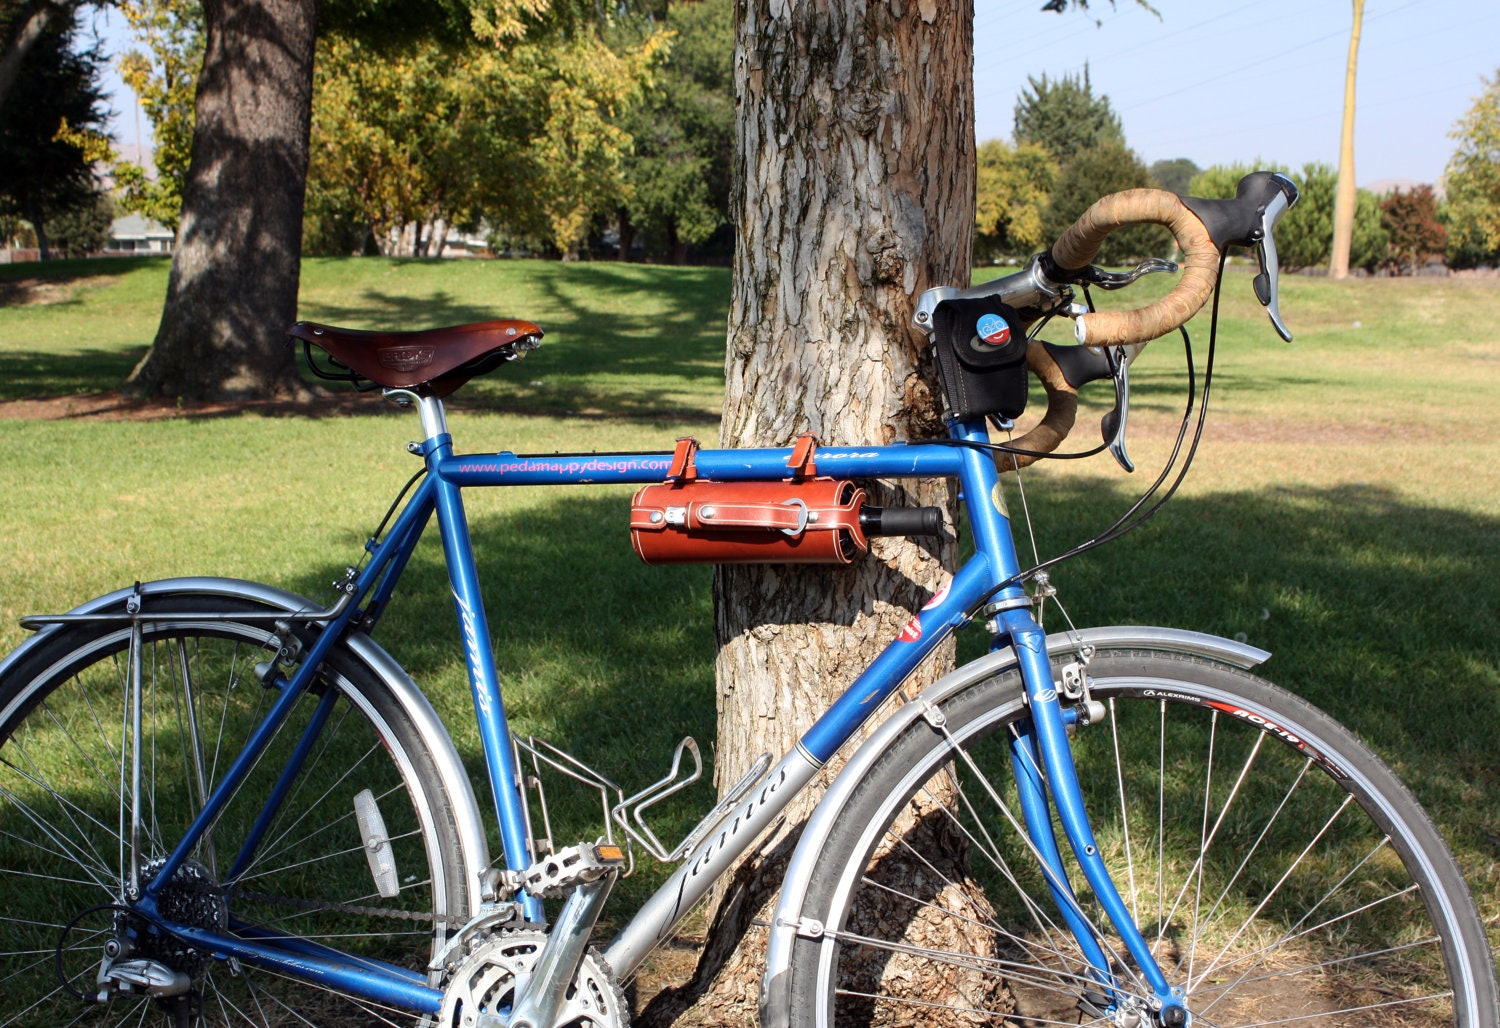 Bicycle Leather Wine Bottle Holder Carrier With Stainless